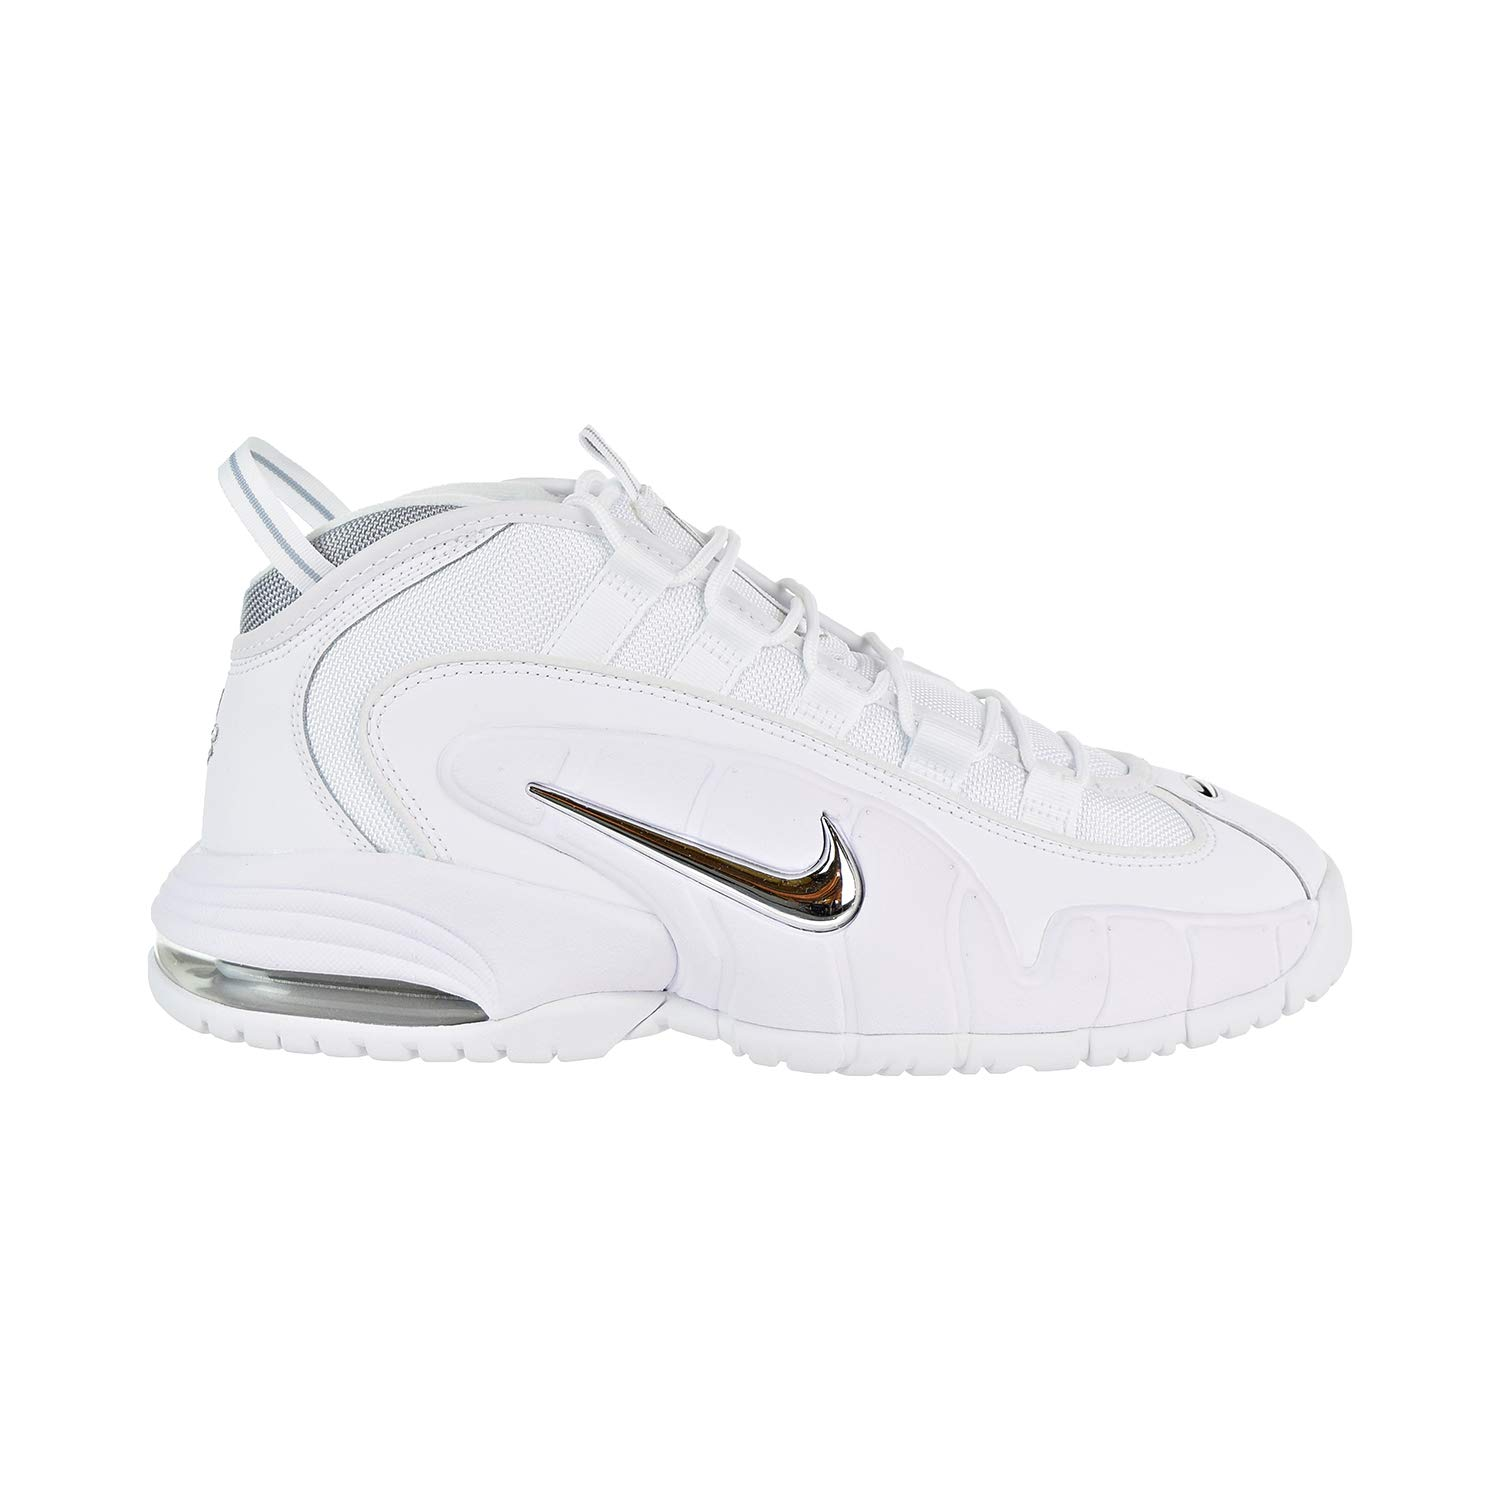 Blanc (blanc blanc Metallic argent 100) Nike Air Max Penny, Chaussures de Fitness Homme 47 EU